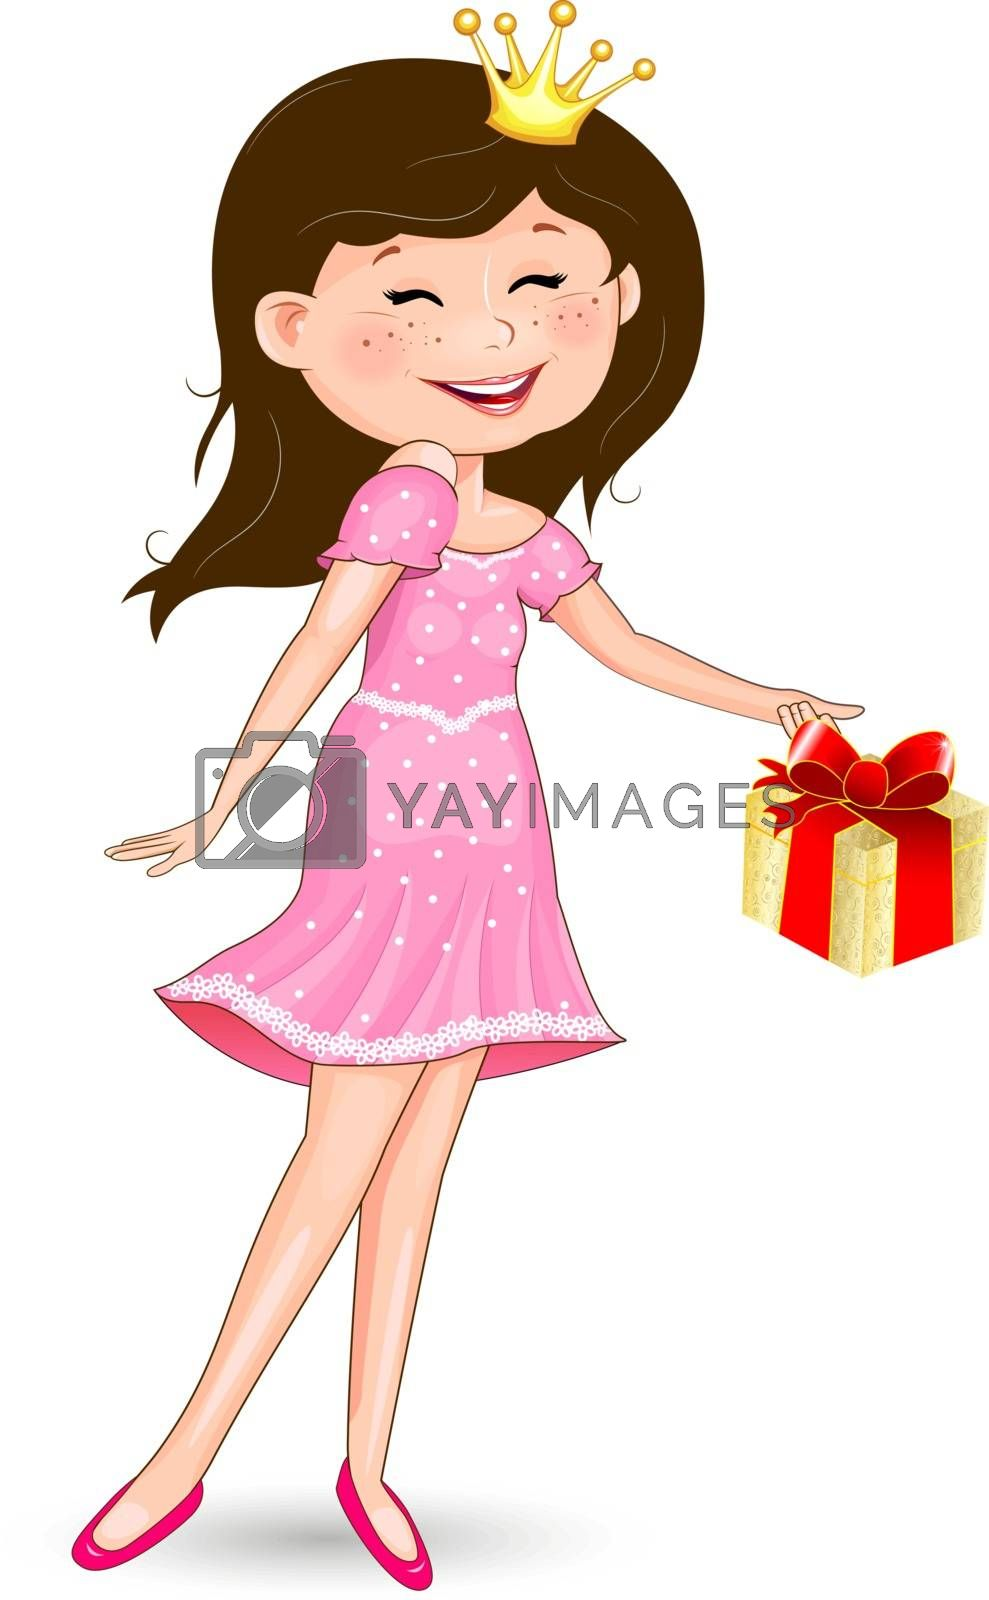 Princess in a pink dress and with a gift on a white background.